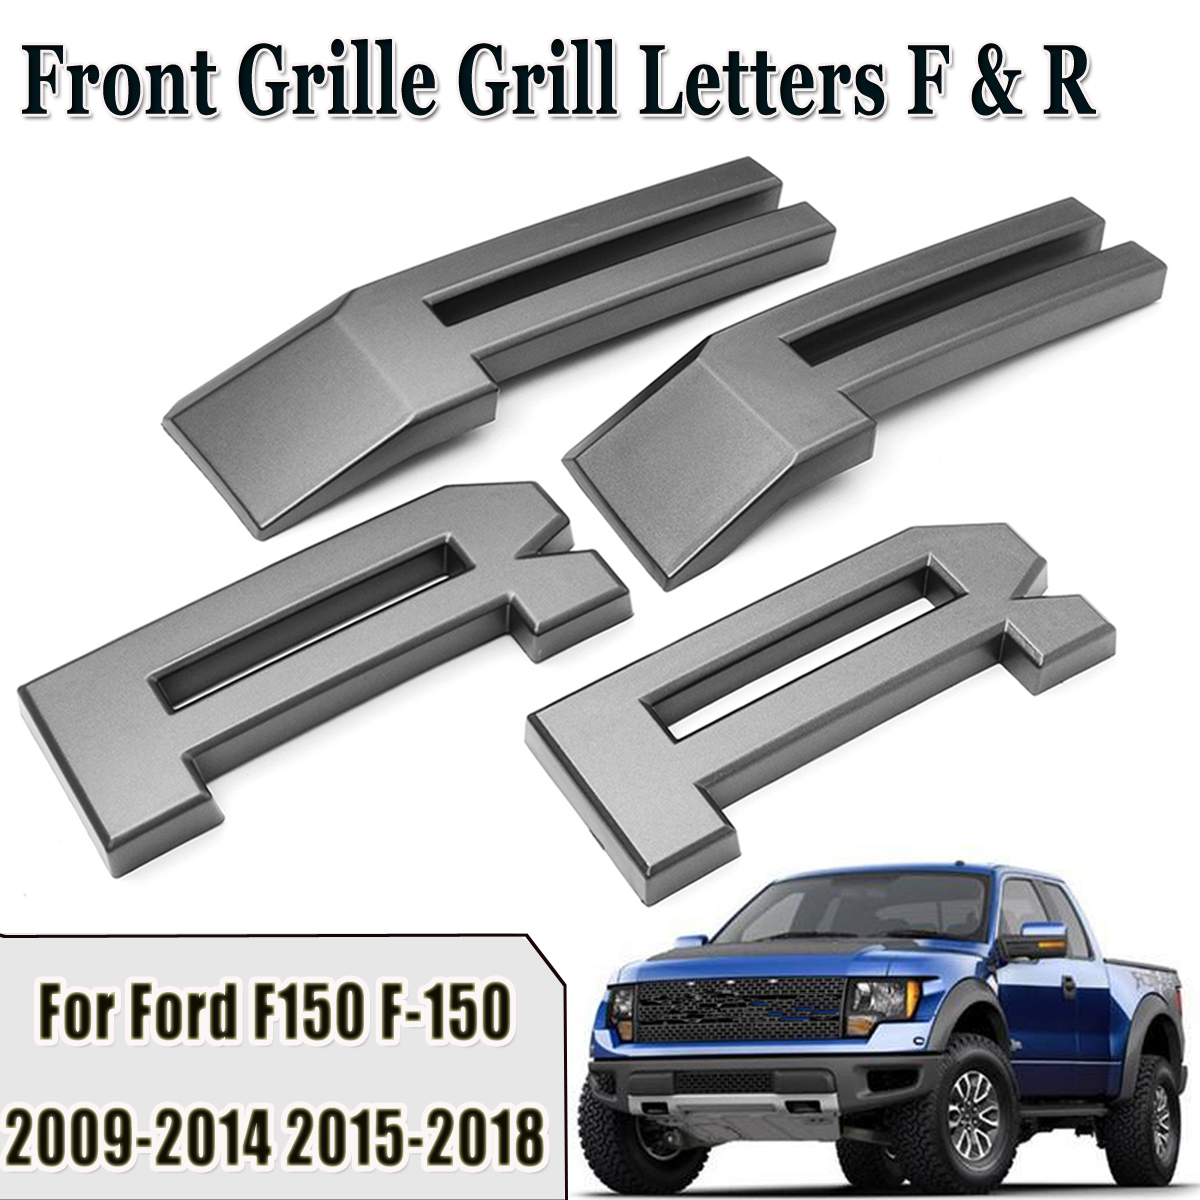 Raptor Style Car Front Grille Grill Letters F R for Ford F150 F-150 2009 2010 2011 2012 2013 2014 2015 2016 2017 2018 for f150 raptor f 150 led tail light rear lights for ford 2008 2012 year smoke black sn